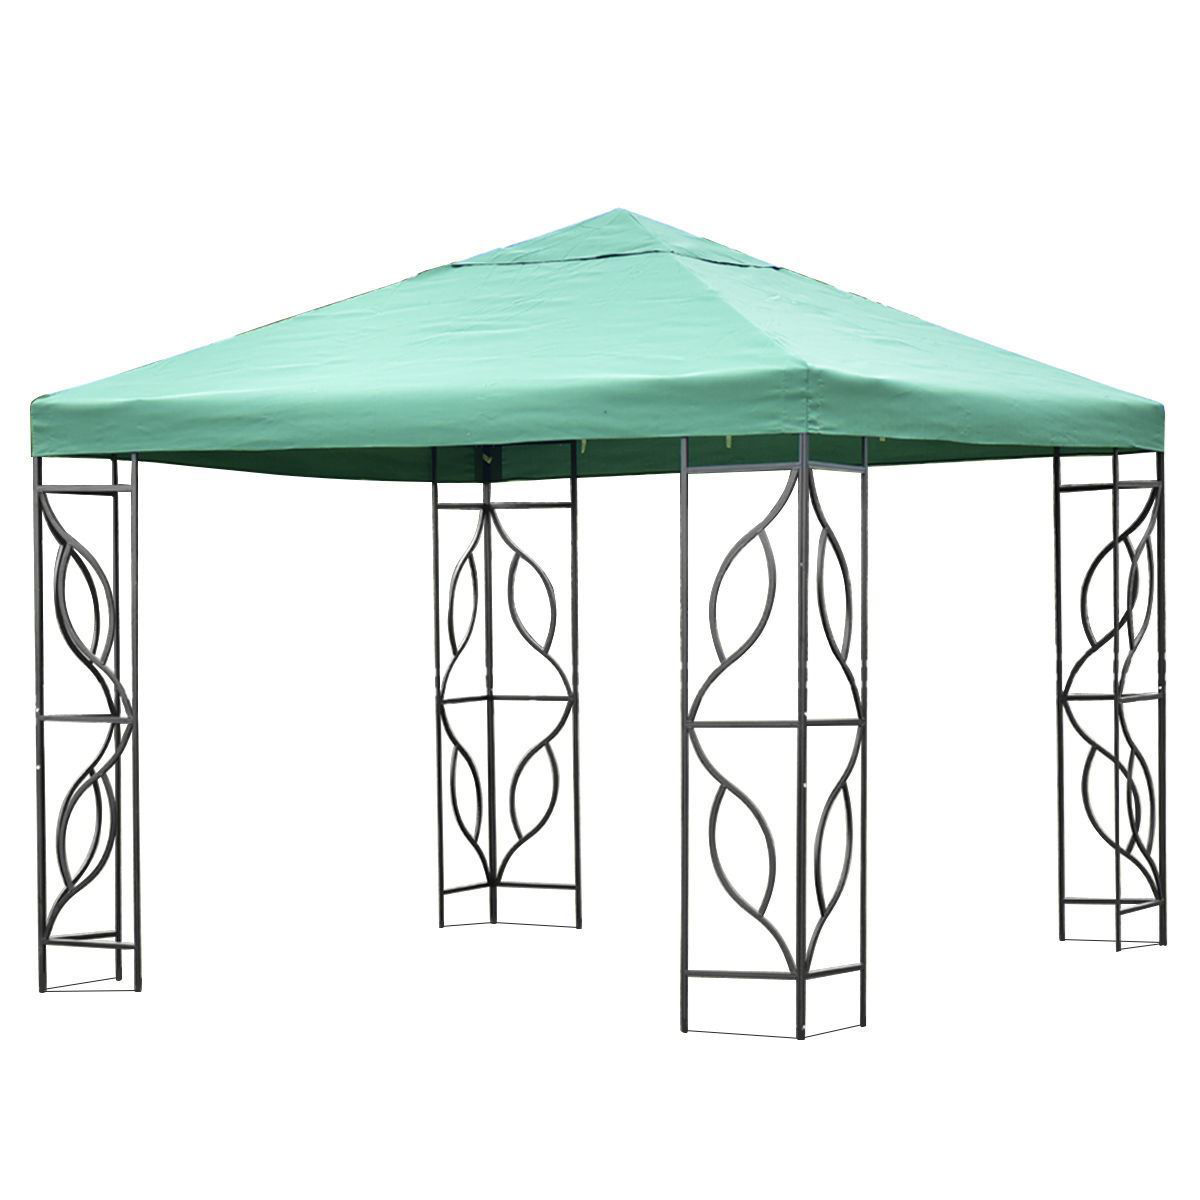 Picture of Outdoor 10' x 10' Tent Gazebo - Green